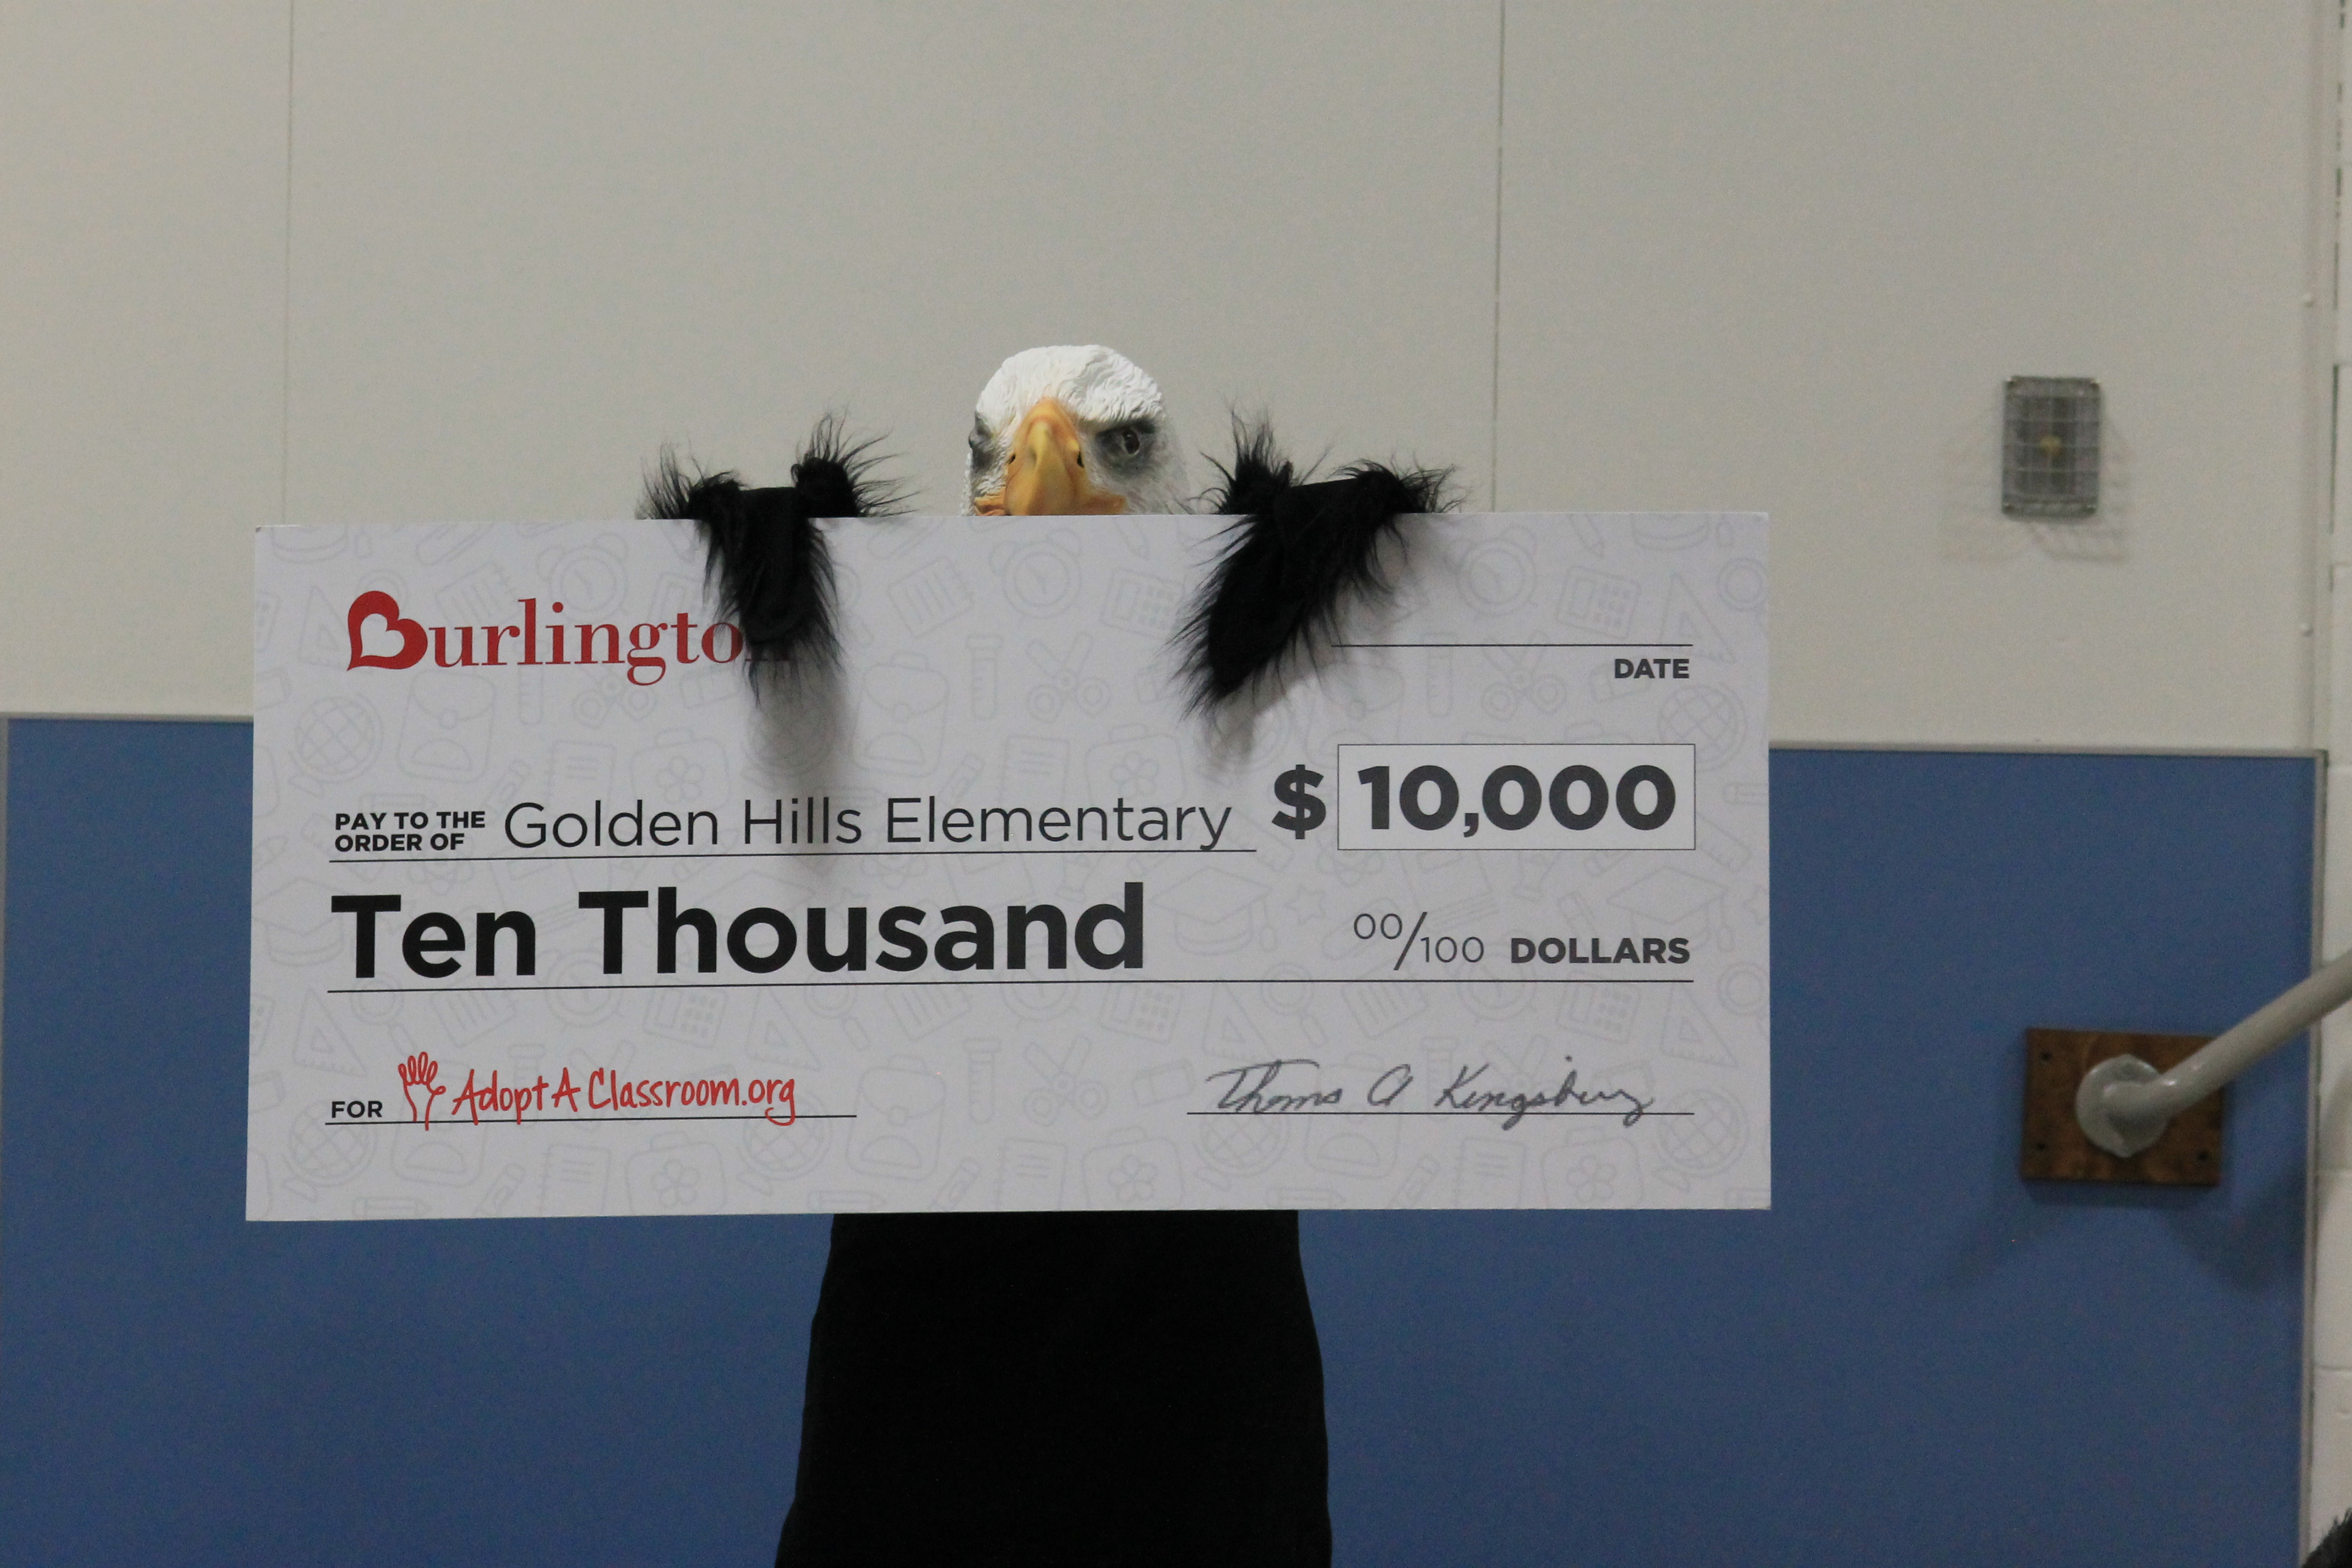 Burlington donates $10,000 to Golden Hills Elementary